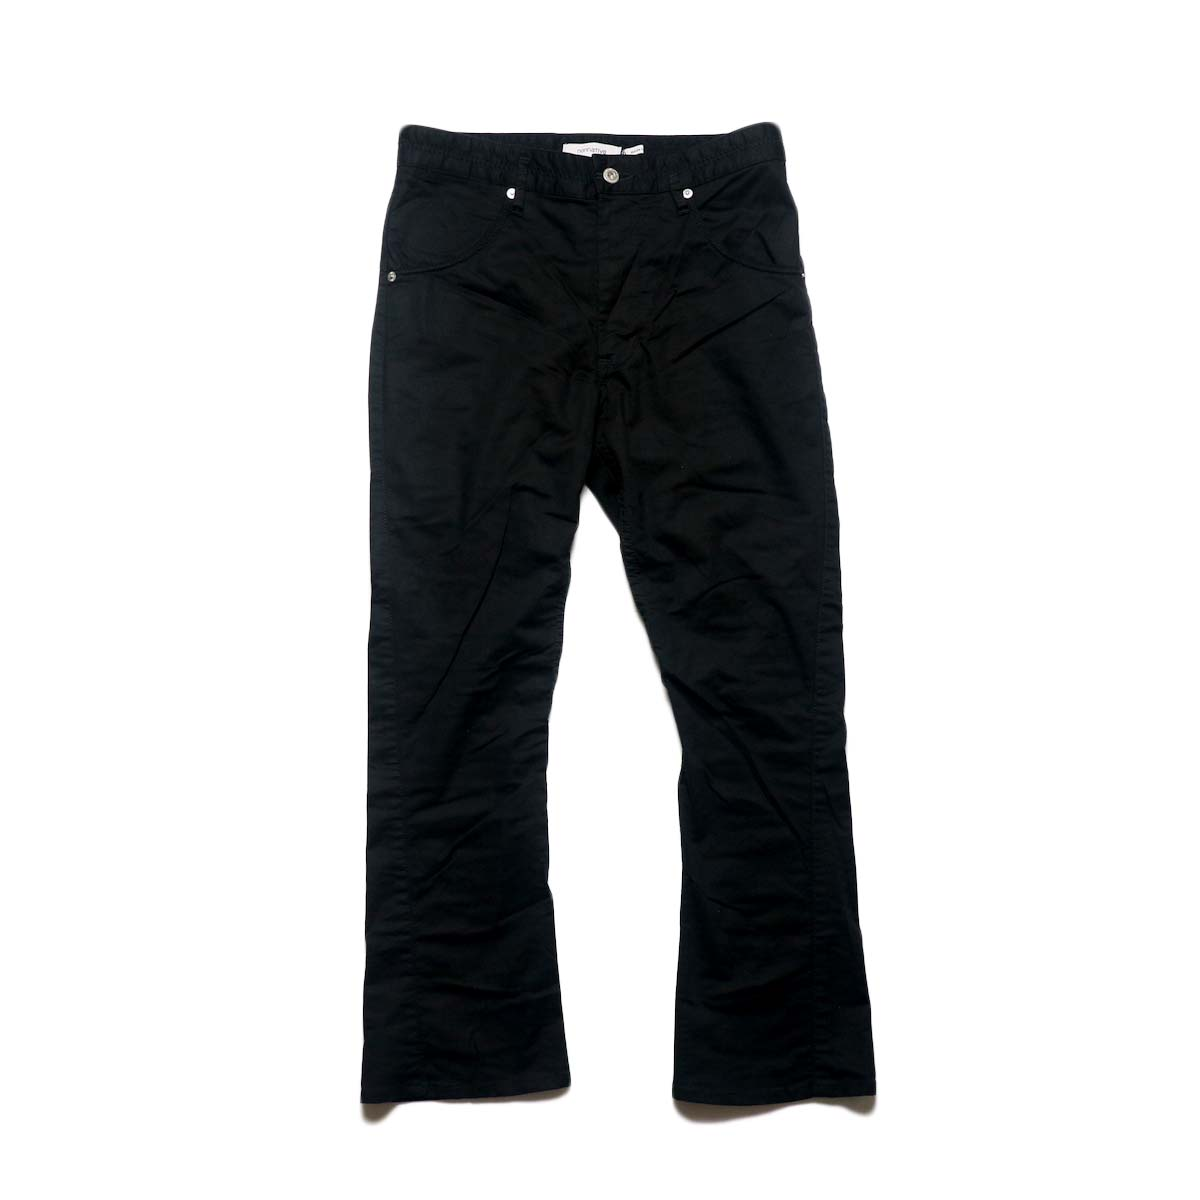 nonnative / DWELLER 5P JEANS FLARED FIT C/P BROKEN TWILL STRETCH (Black)